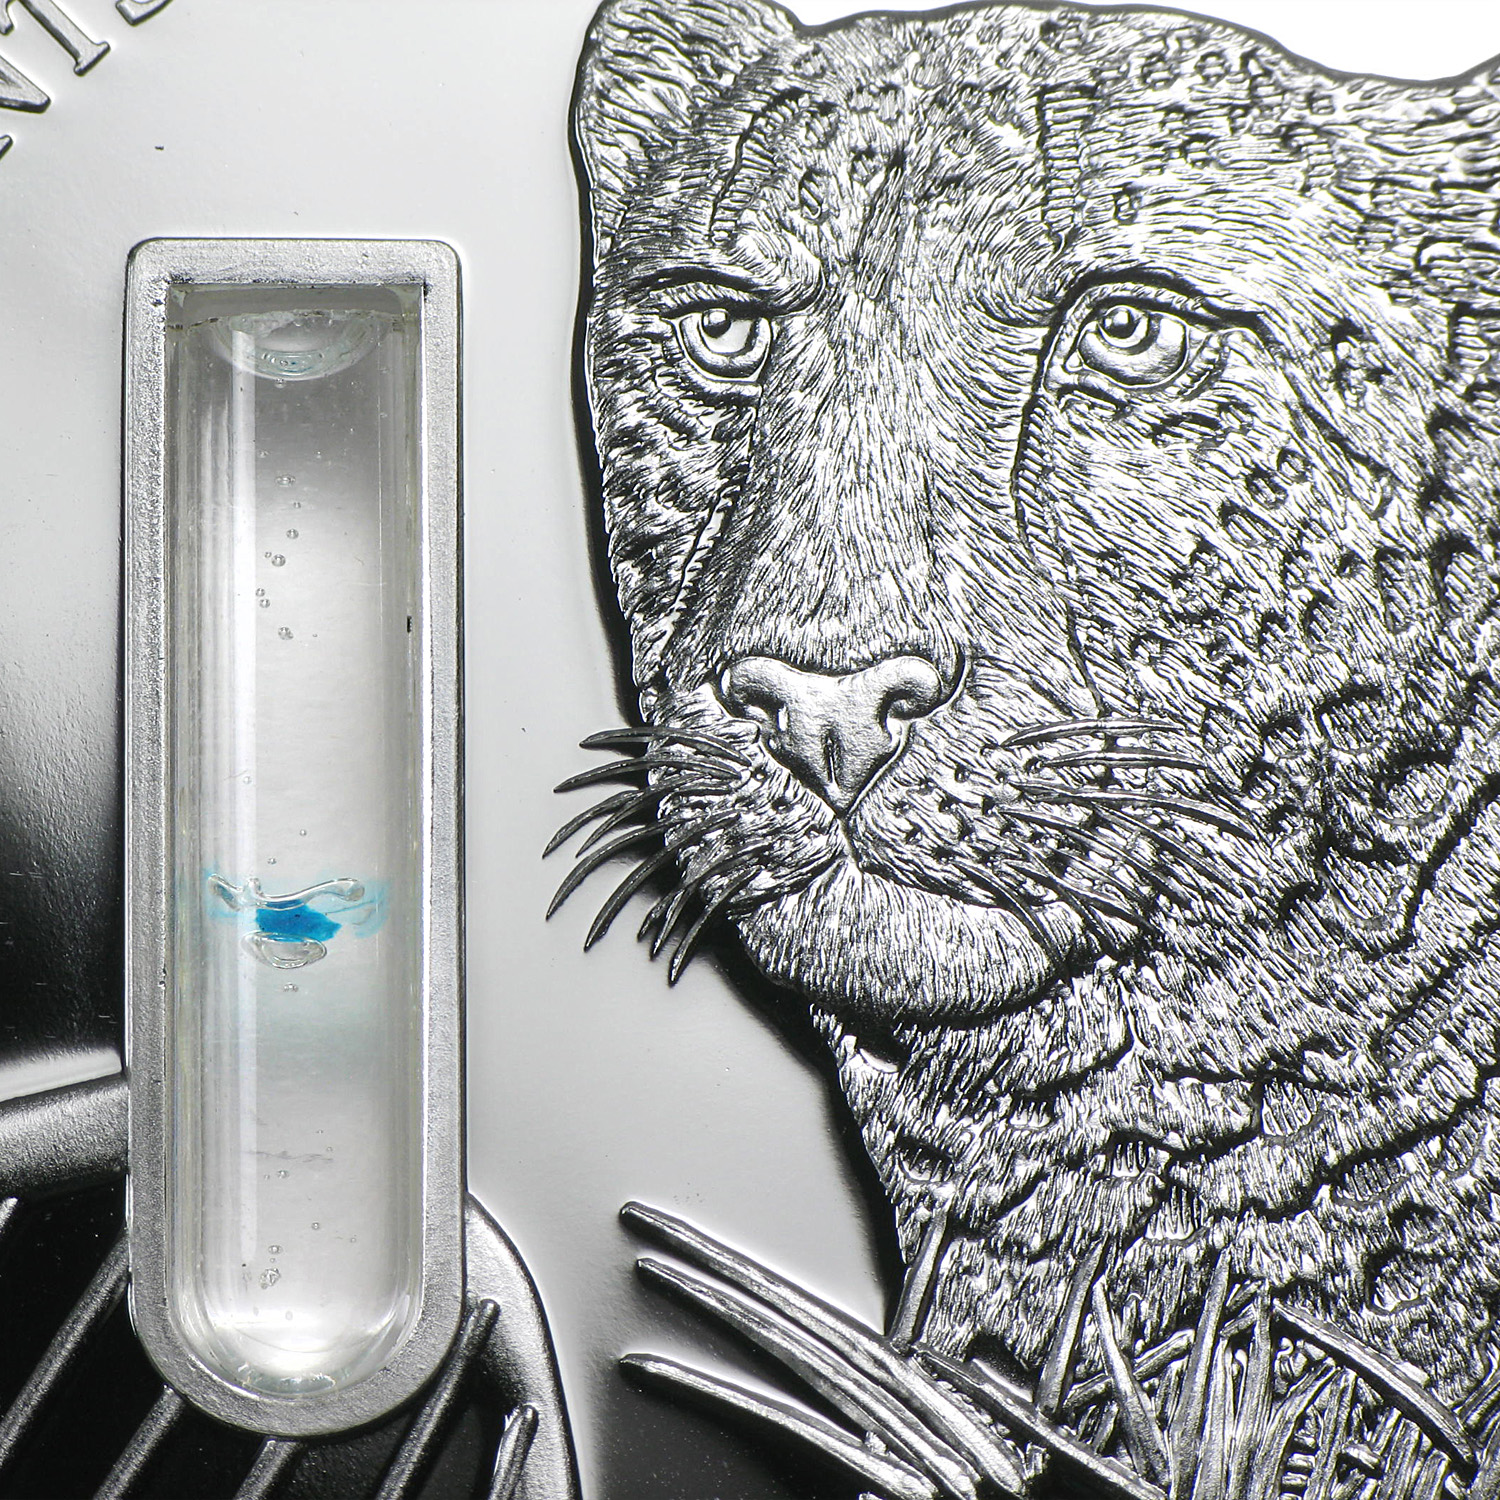 2014 Congo 2 oz Silver Elements of Life Cheetah